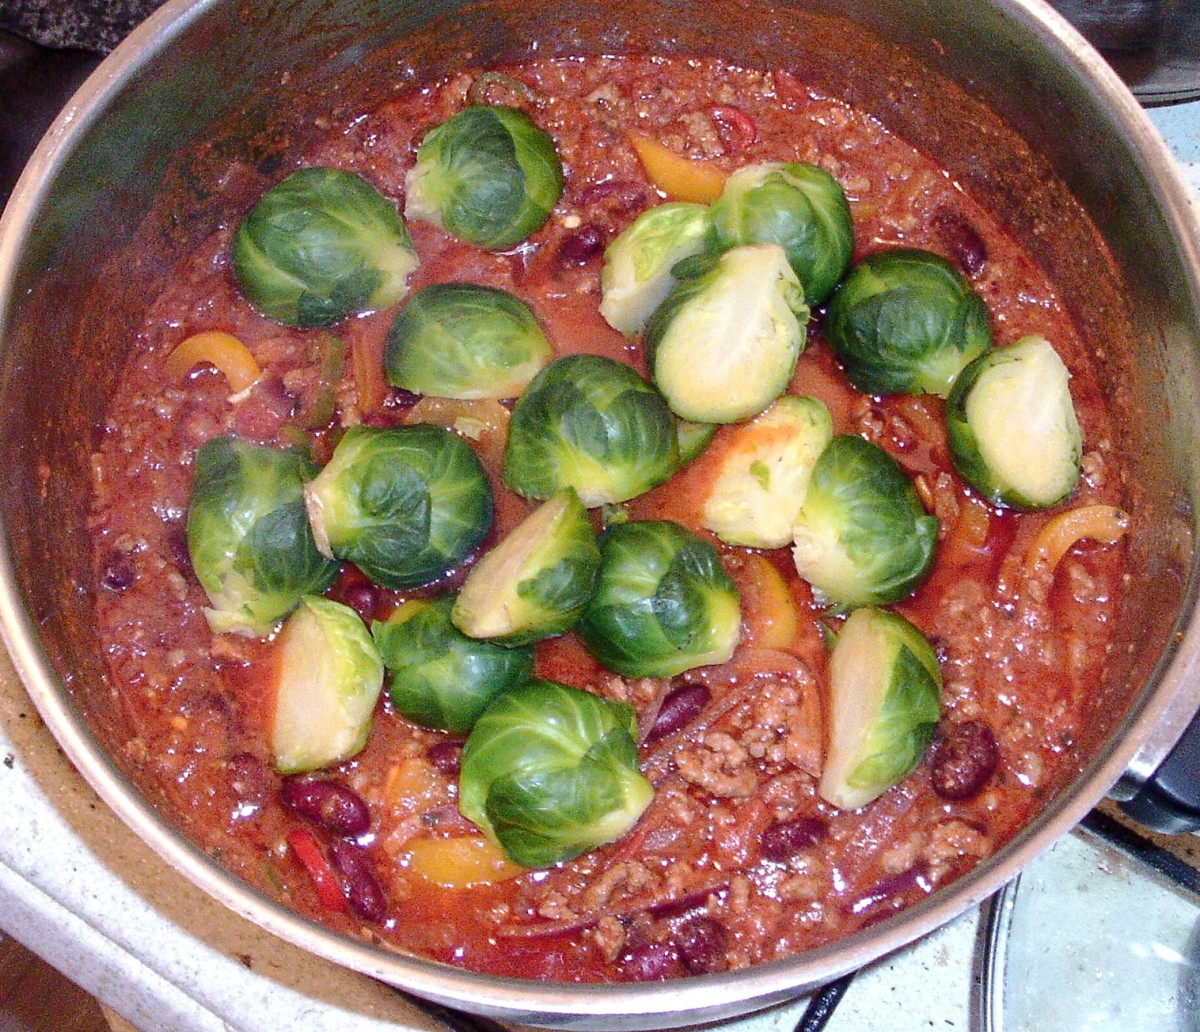 Halved sprouts are added to chilli